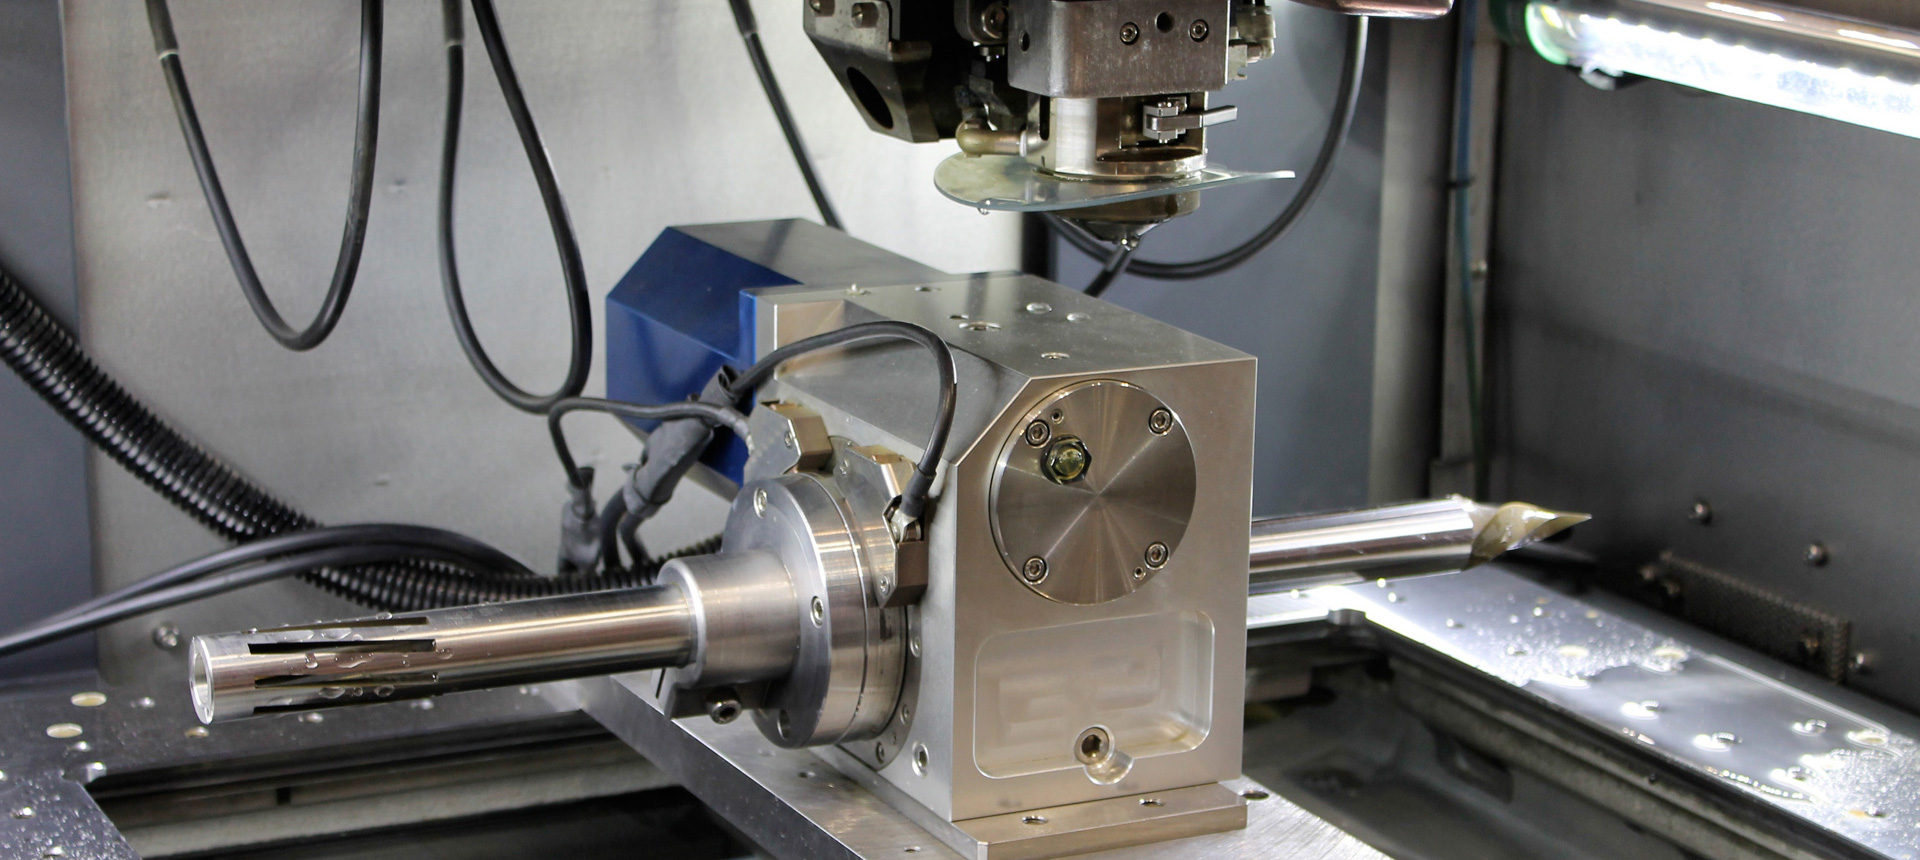 Custom EDM | Electrical Discharge Machining